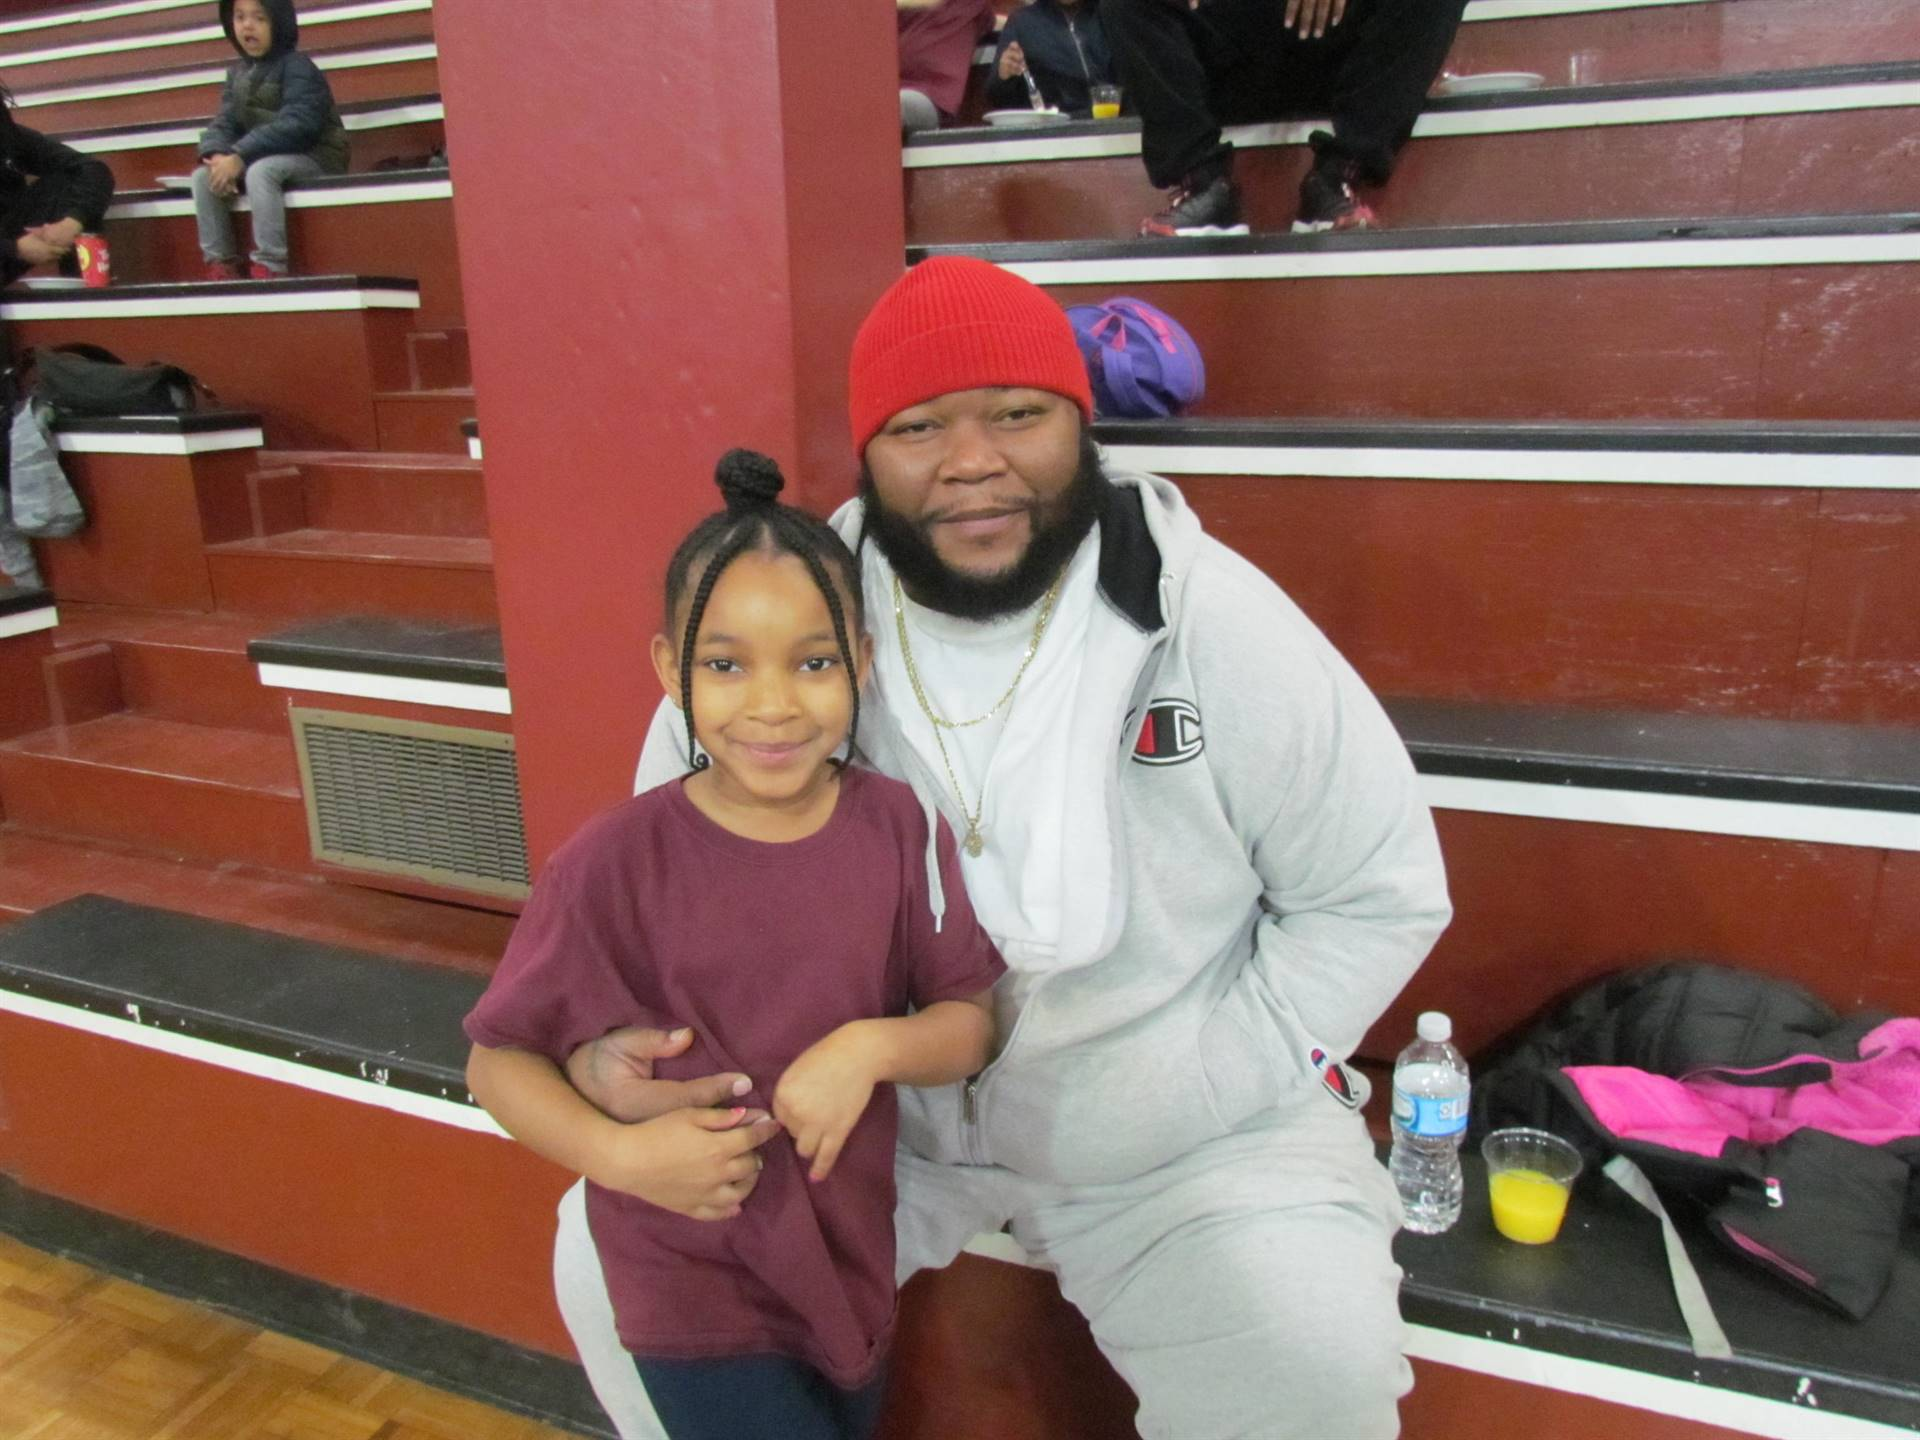 dad posing with daughter on bleachers